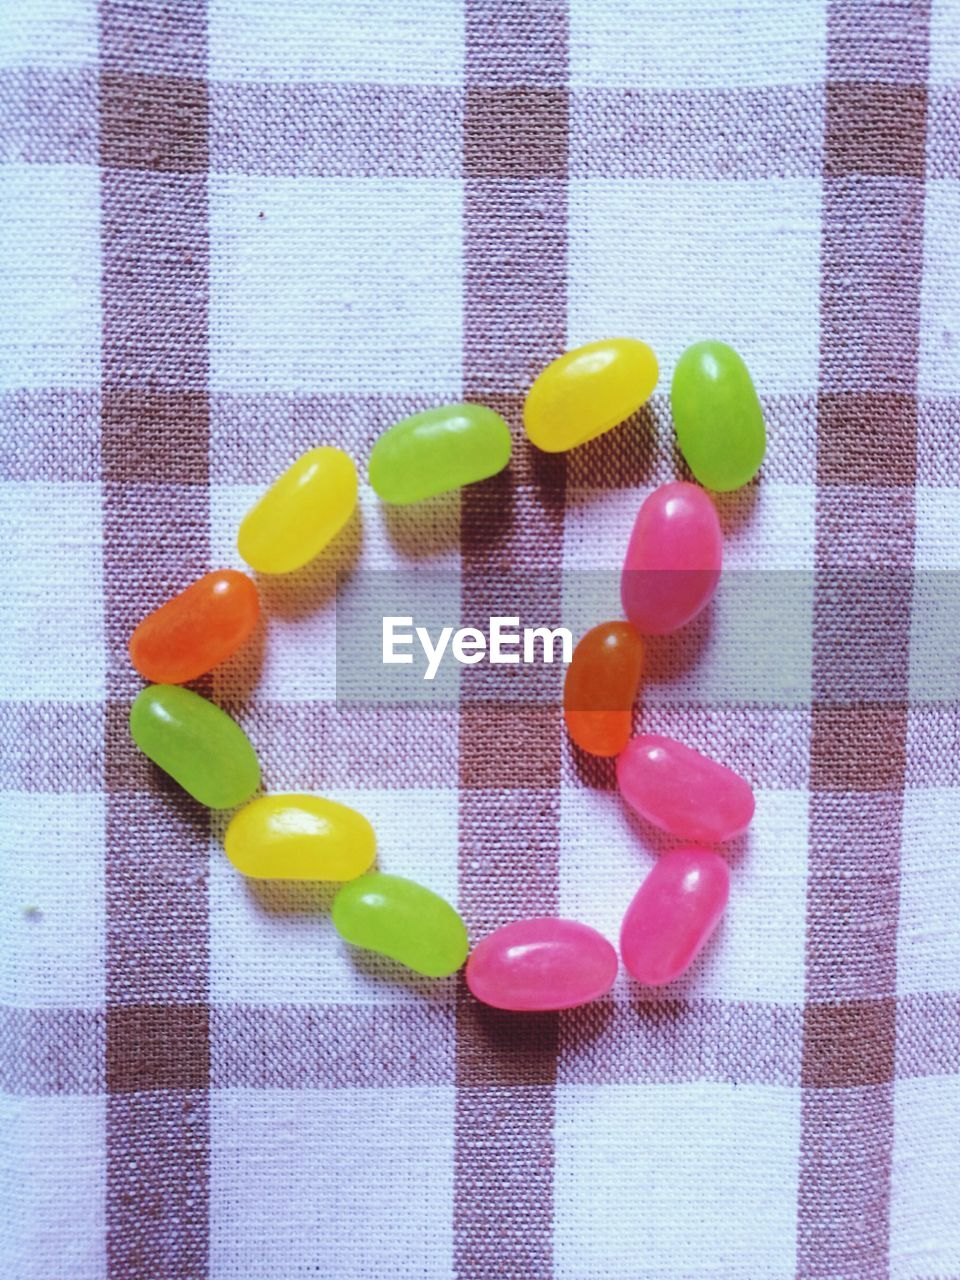 Directly above shot of candies arranged as heart shape on table